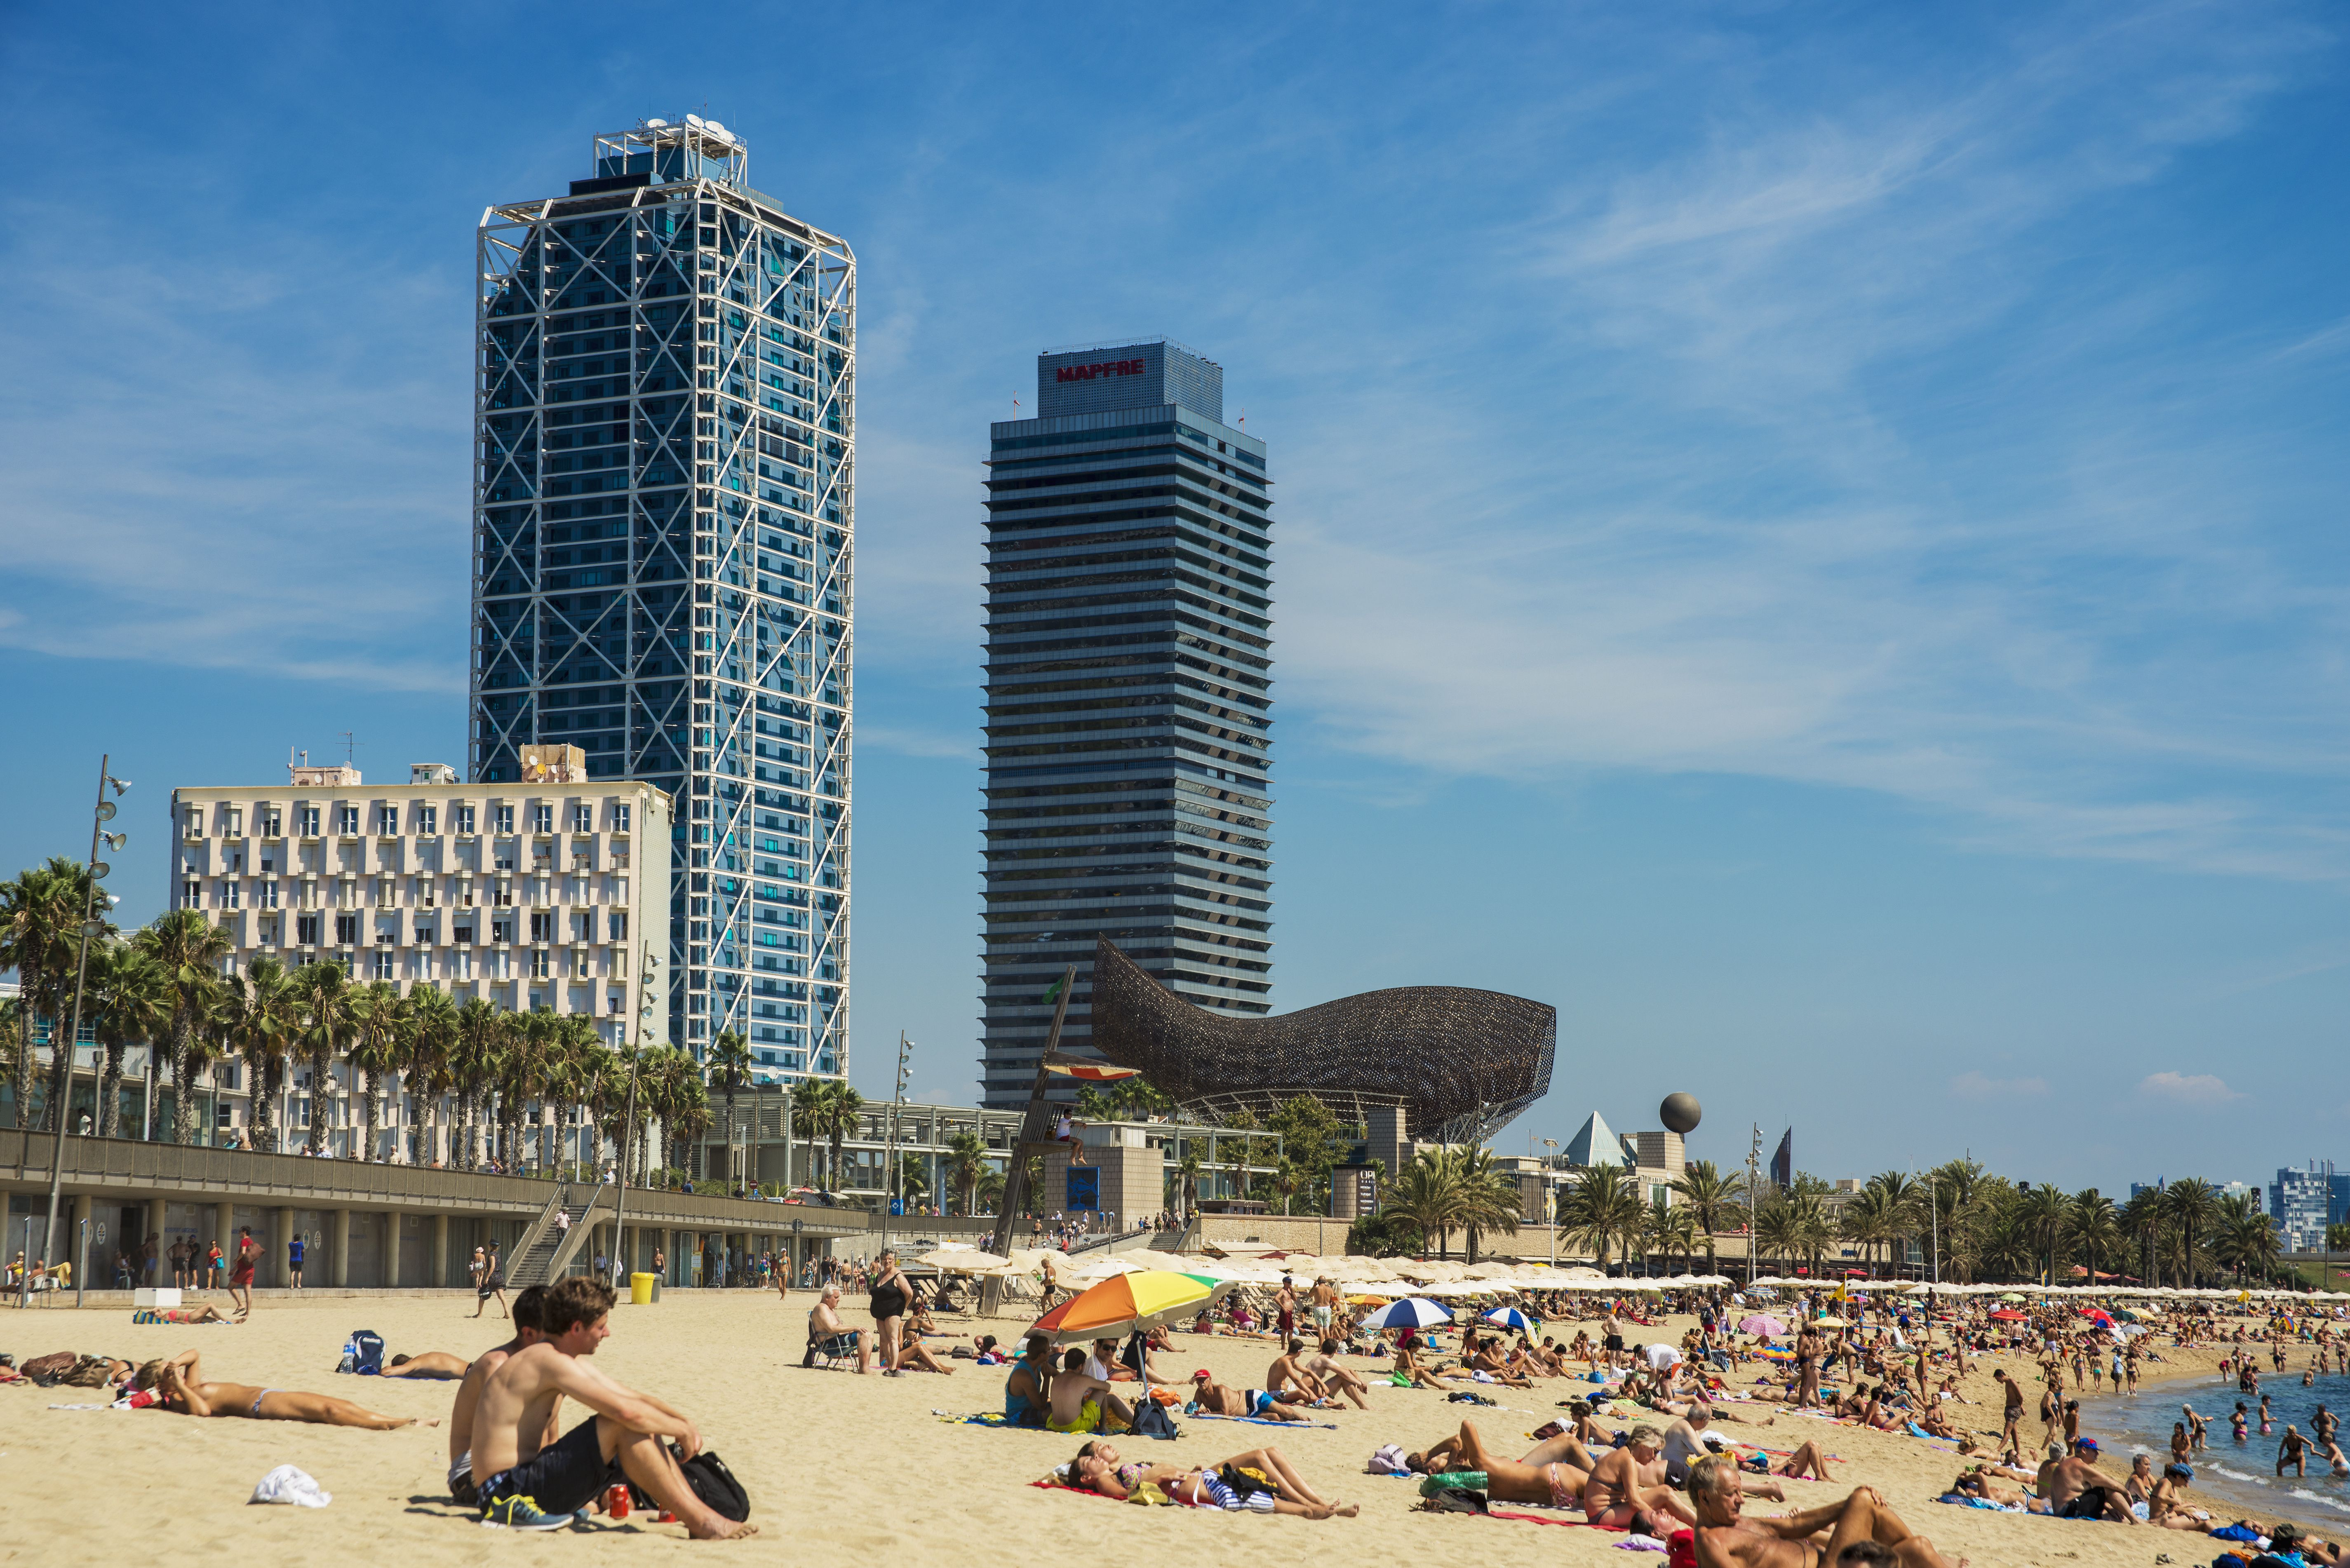 A Crowded Barceloneta Beach With Skysers In The Distance